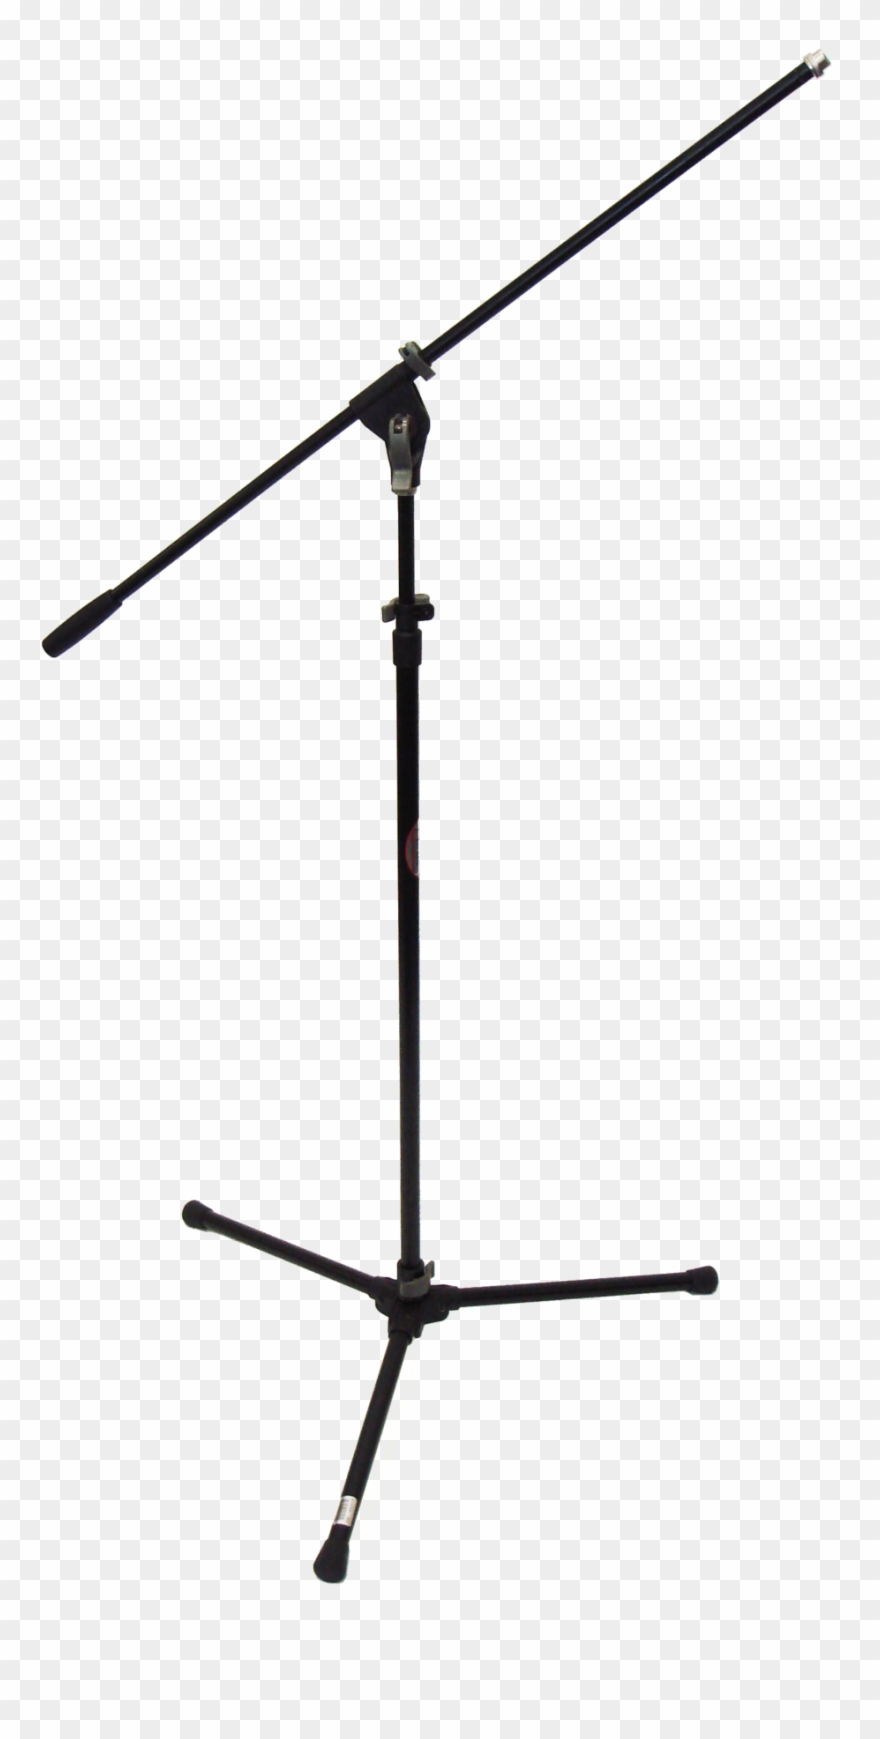 Microphone stand clipart jpg black and white Microphone Stand Png - Transparent Microphone Stand Png Clipart ... jpg black and white